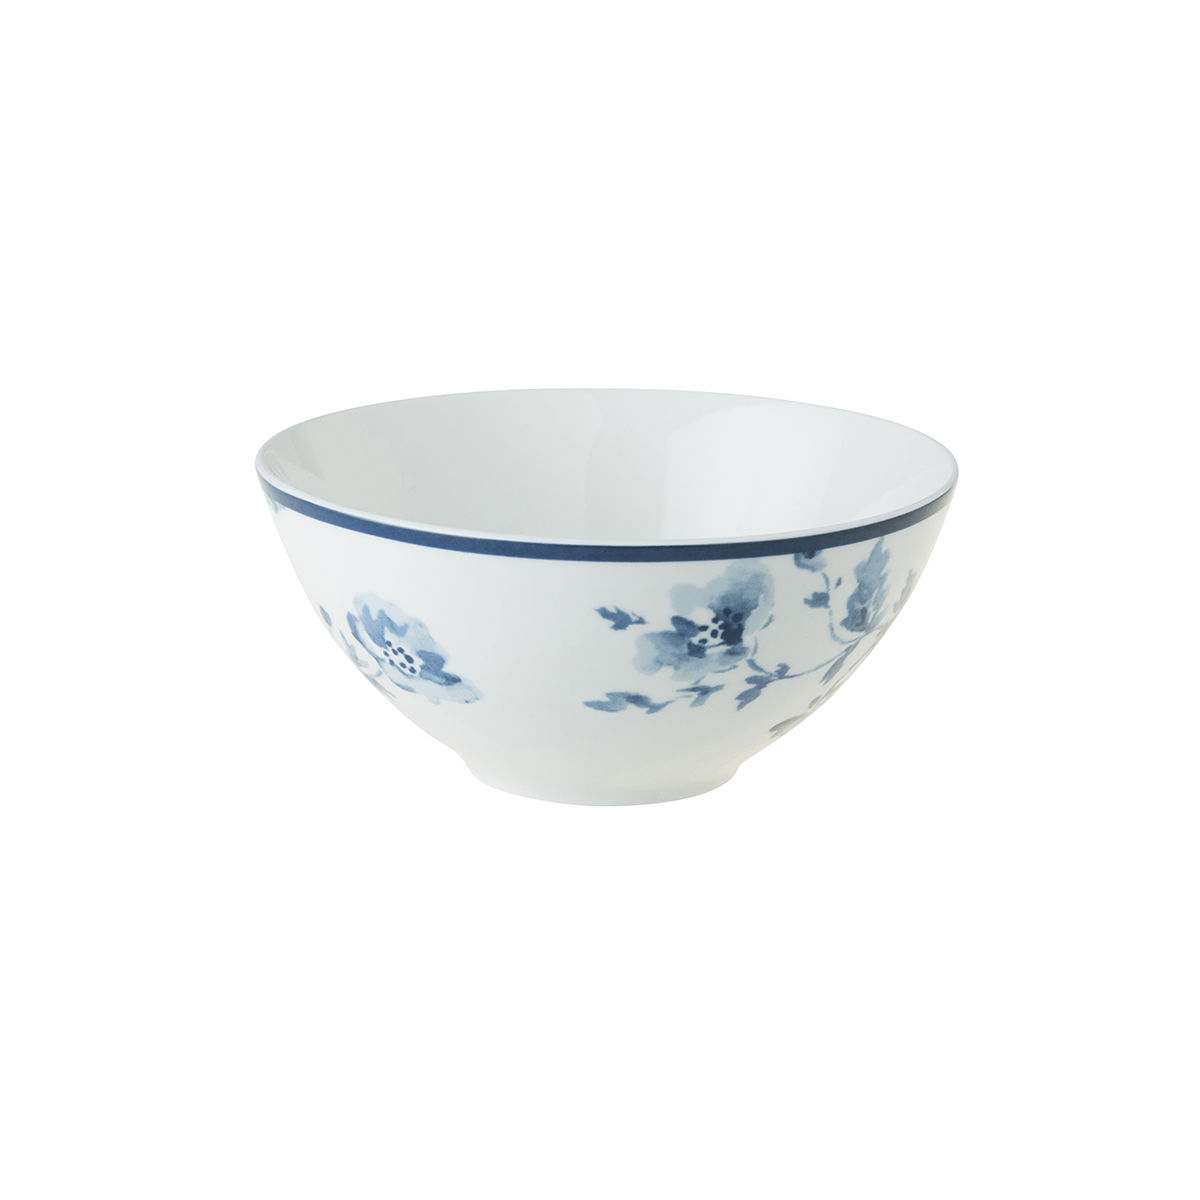 "Laura Ashley 5"" Bowl China Rose - product images  of"